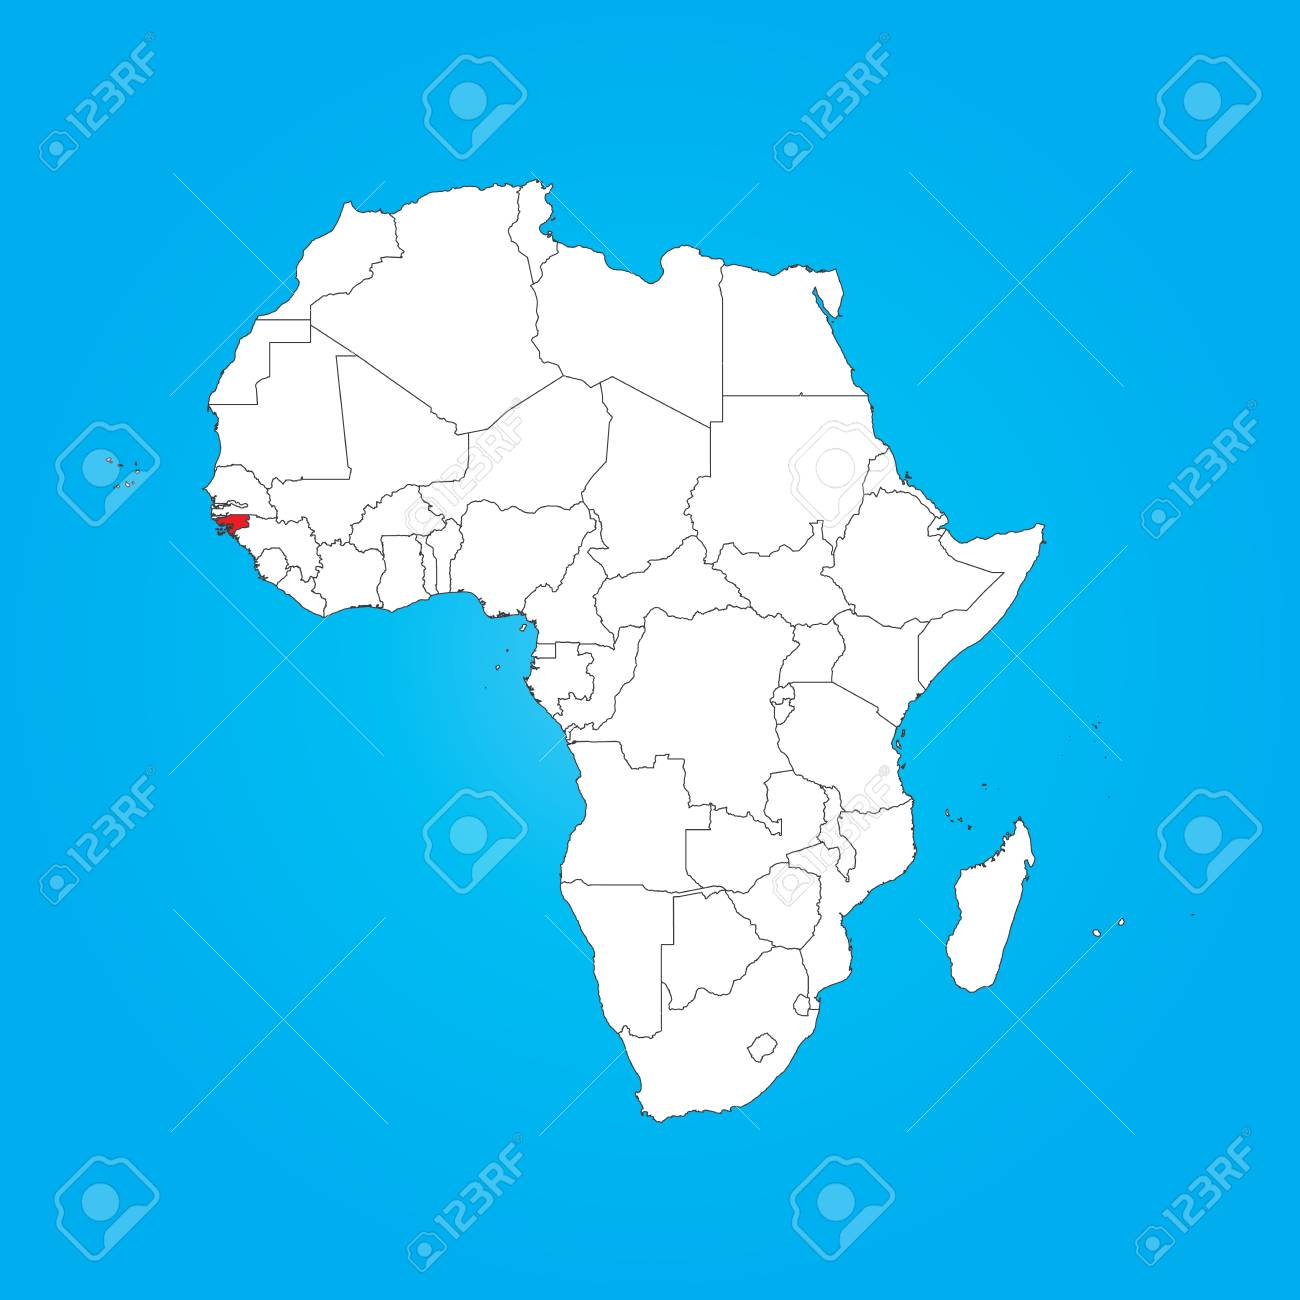 A Map Of Africa With A Selected Country Of Guinea Bissau Stock